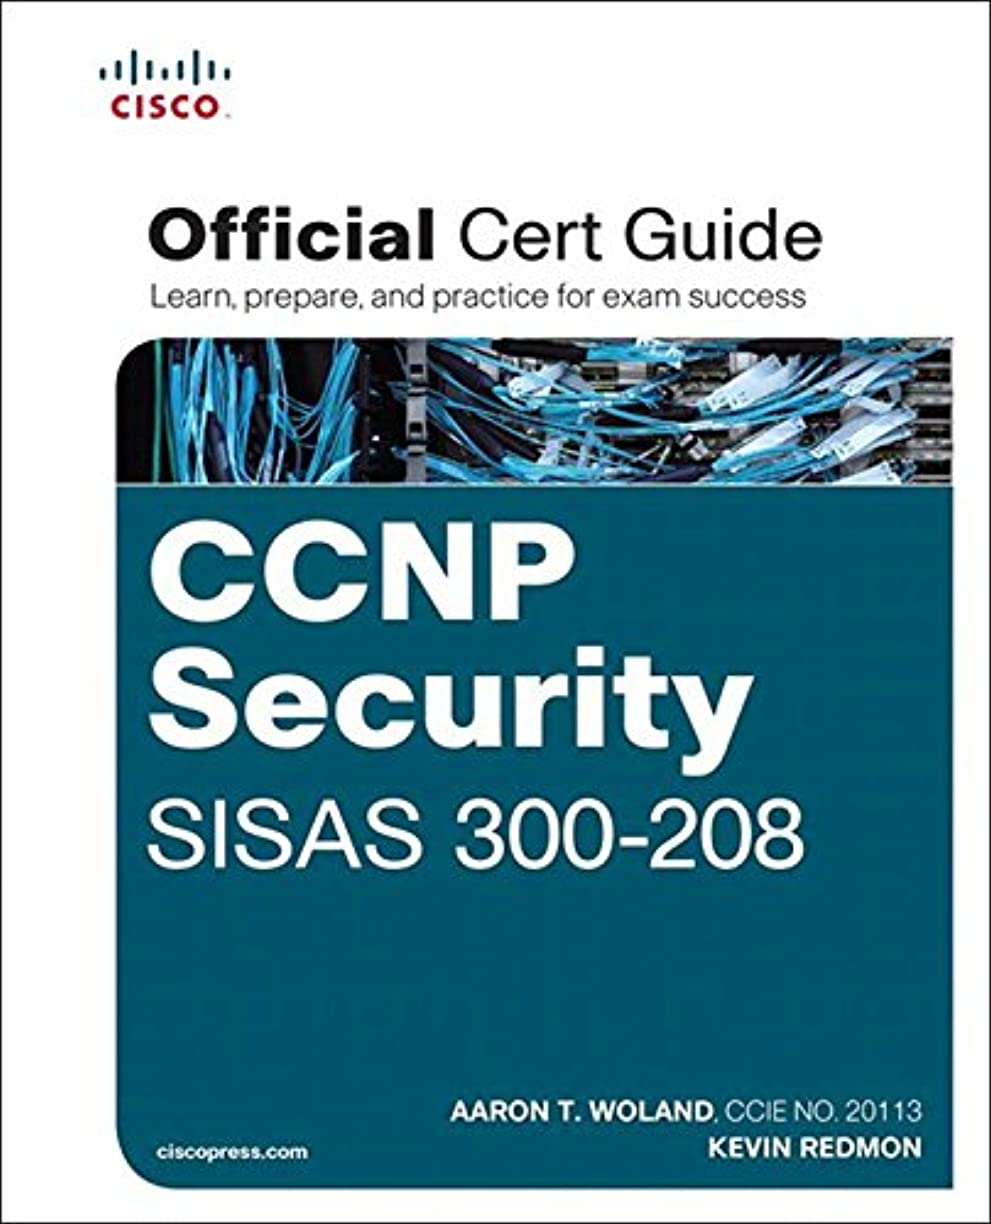 適合しましたバーコンピューターゲームをプレイするCCNP Security SISAS 300-208 Official Cert Guide: CCNP Secu SISA 3002 ePub _1 (Certification Guide) (English Edition)